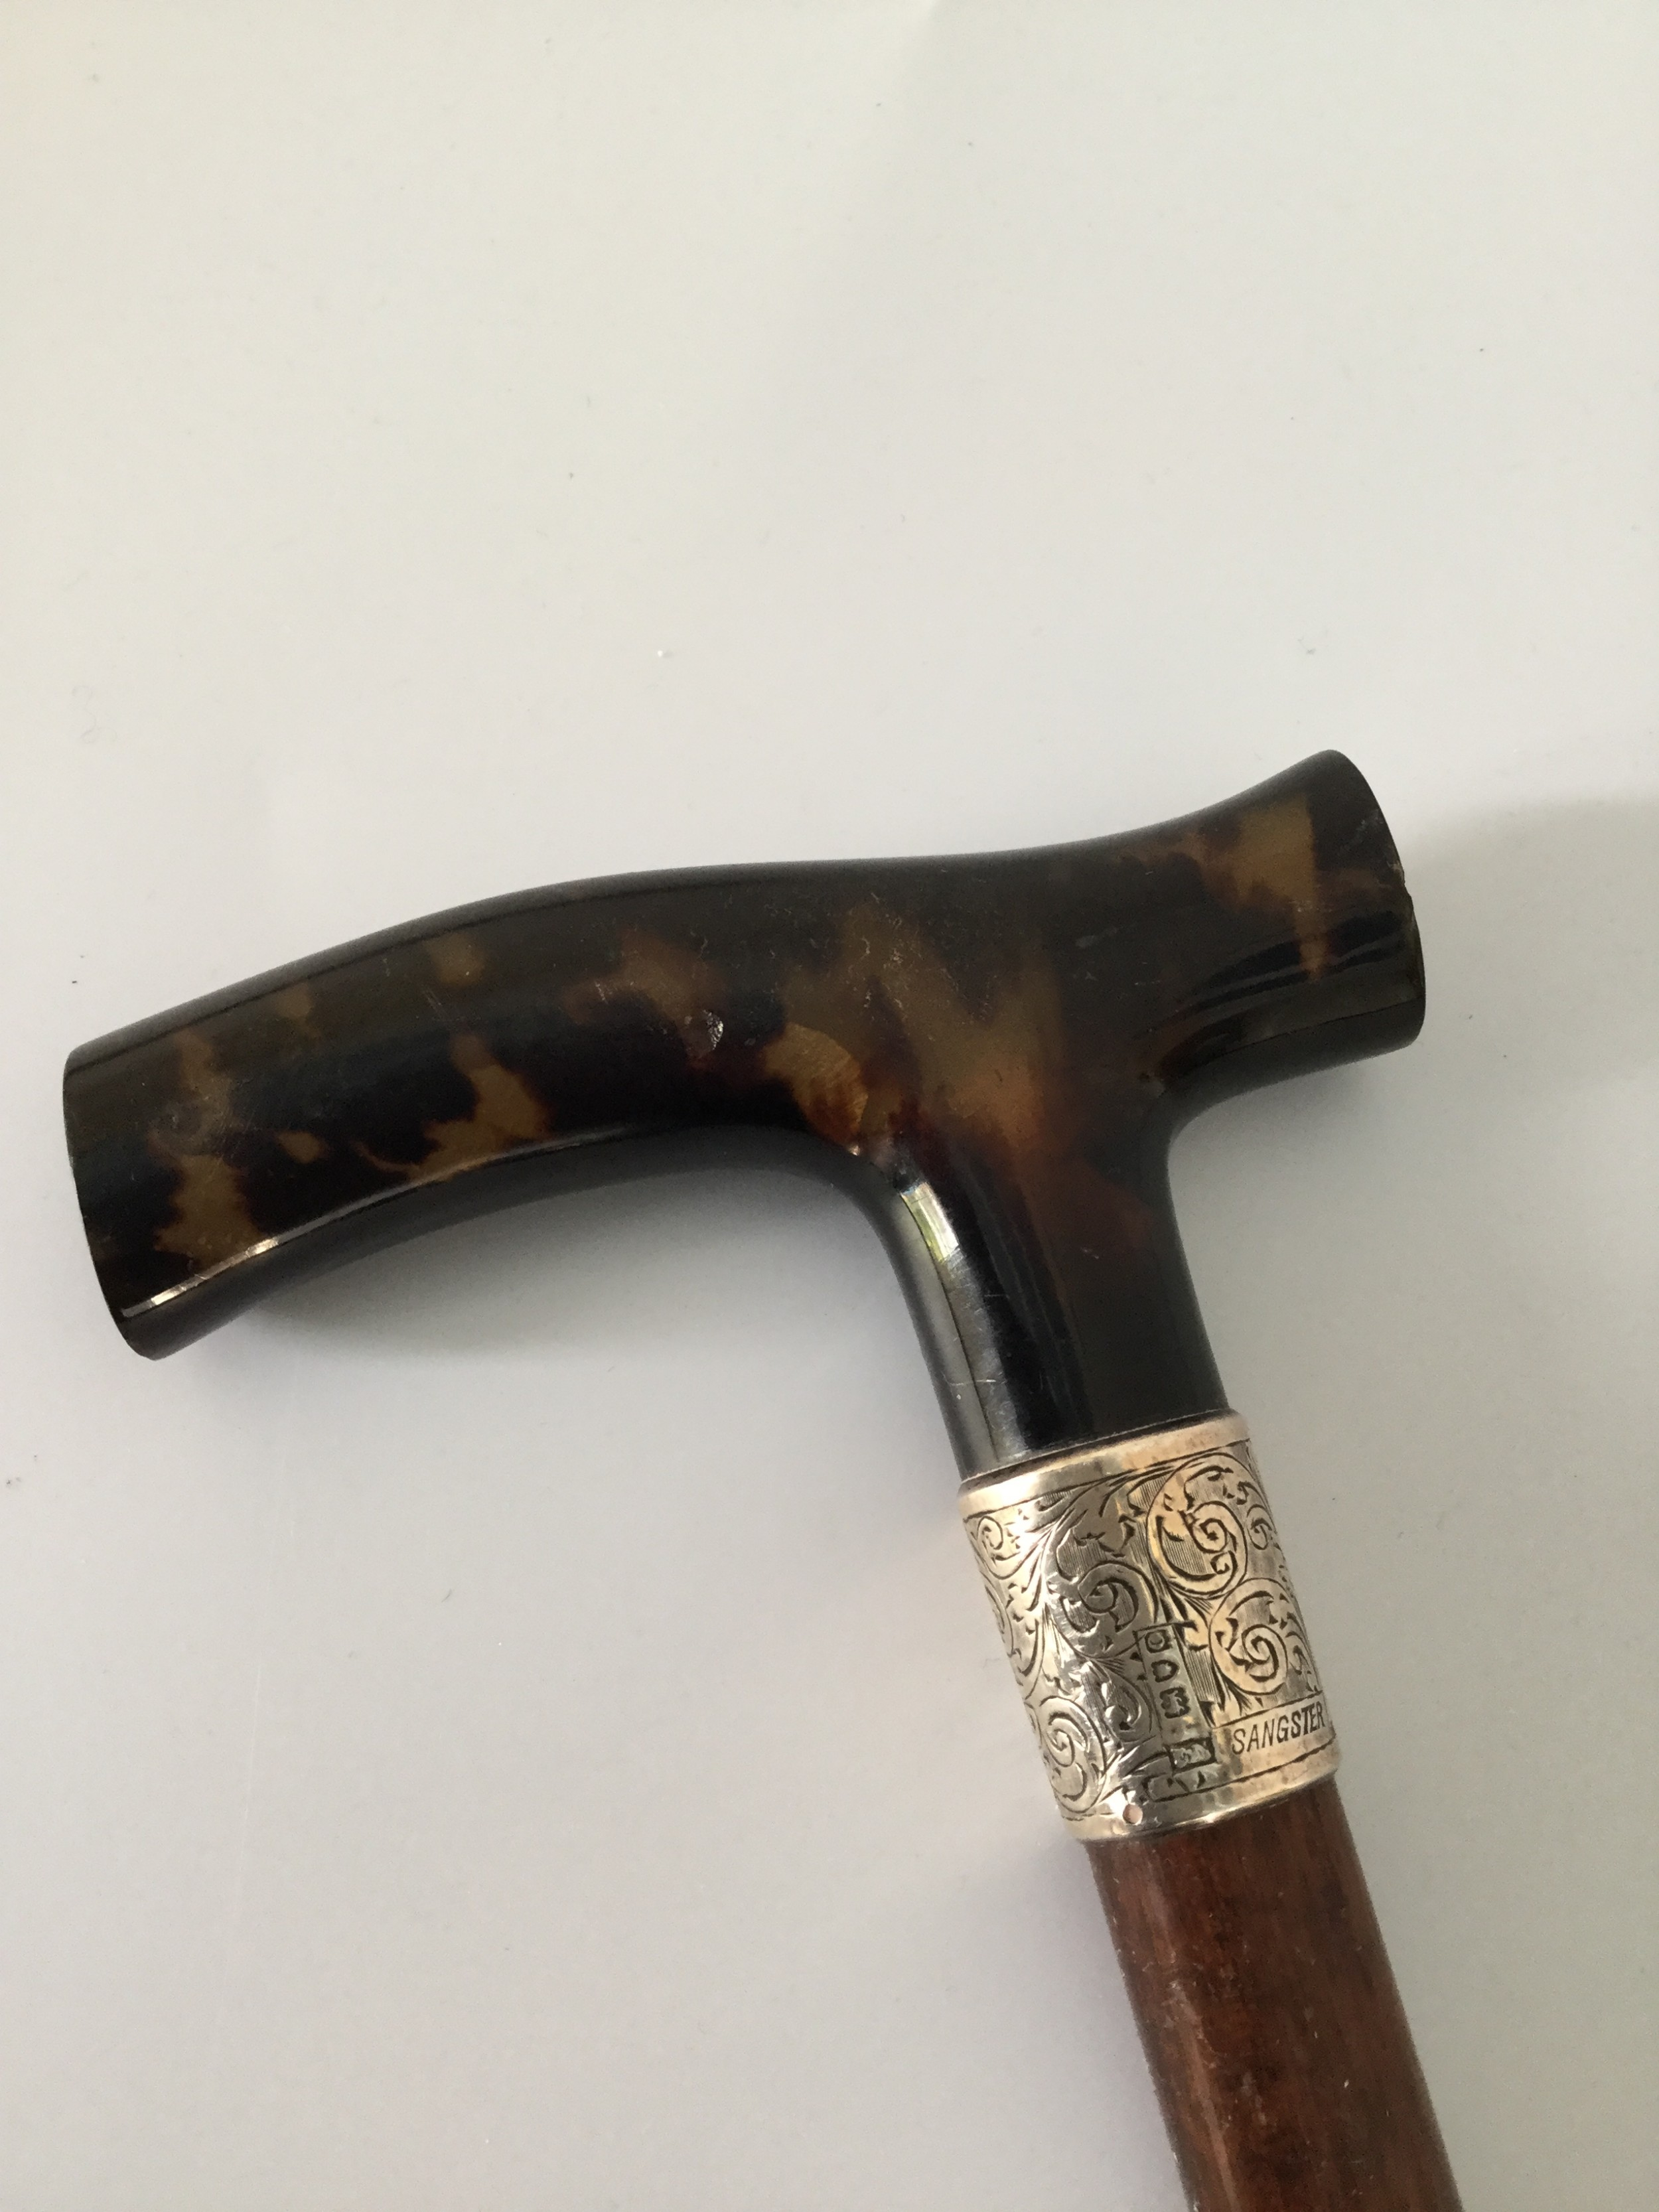 edwardian silver tortoiseshell and partridge wood stick cane london 1909 by sangster